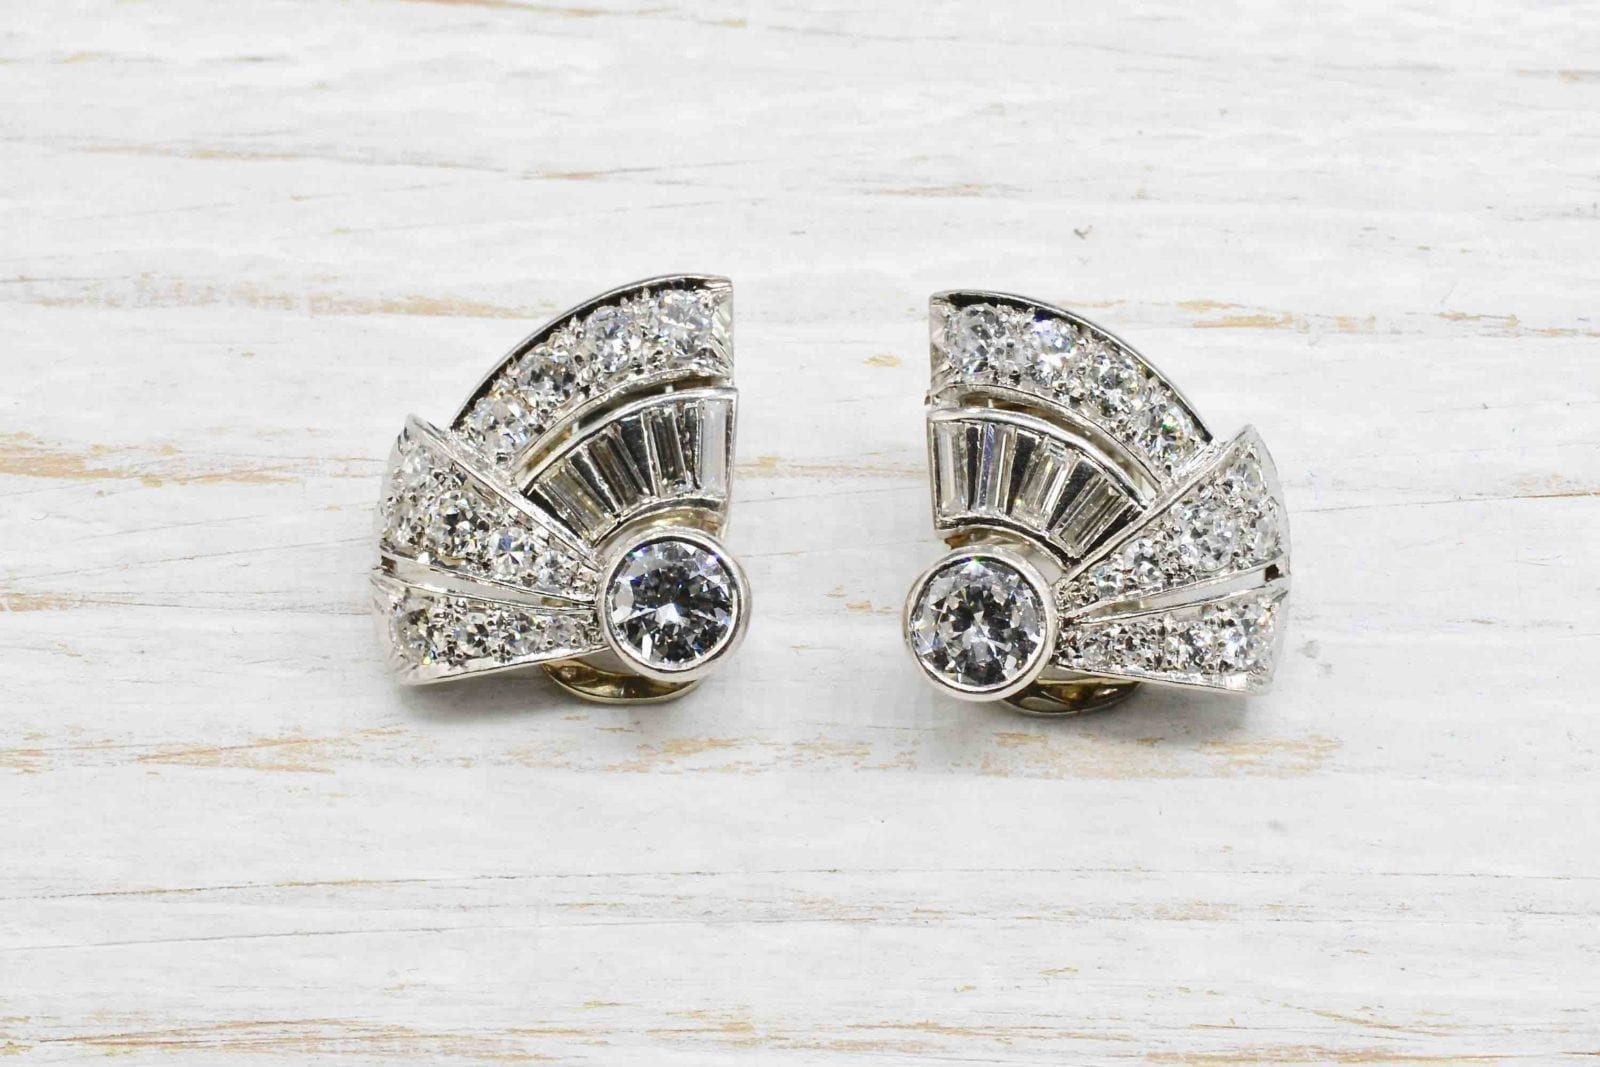 Boucles d'oreilles 1930 diamants en platine